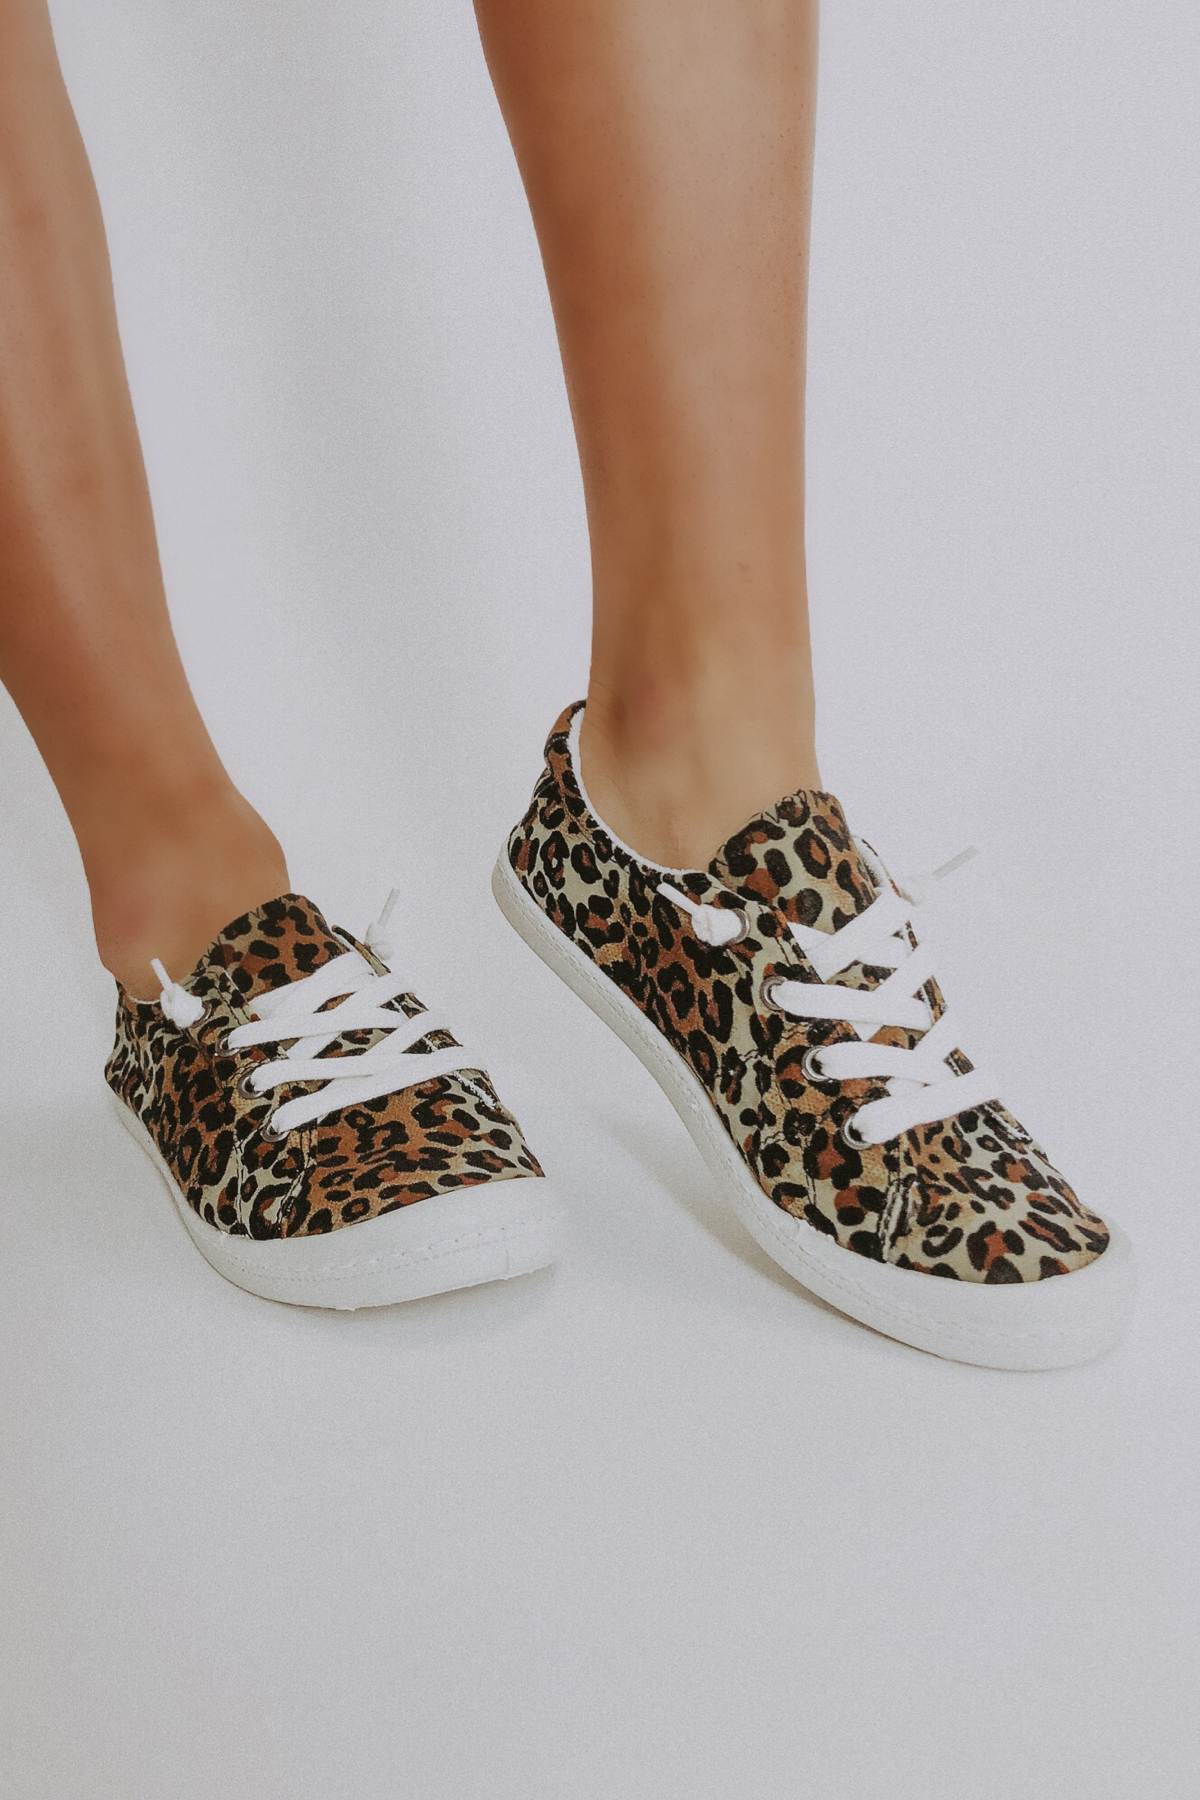 LEOPARD SOFT CANVAS SNEAKERS / FINAL CLEARANCE